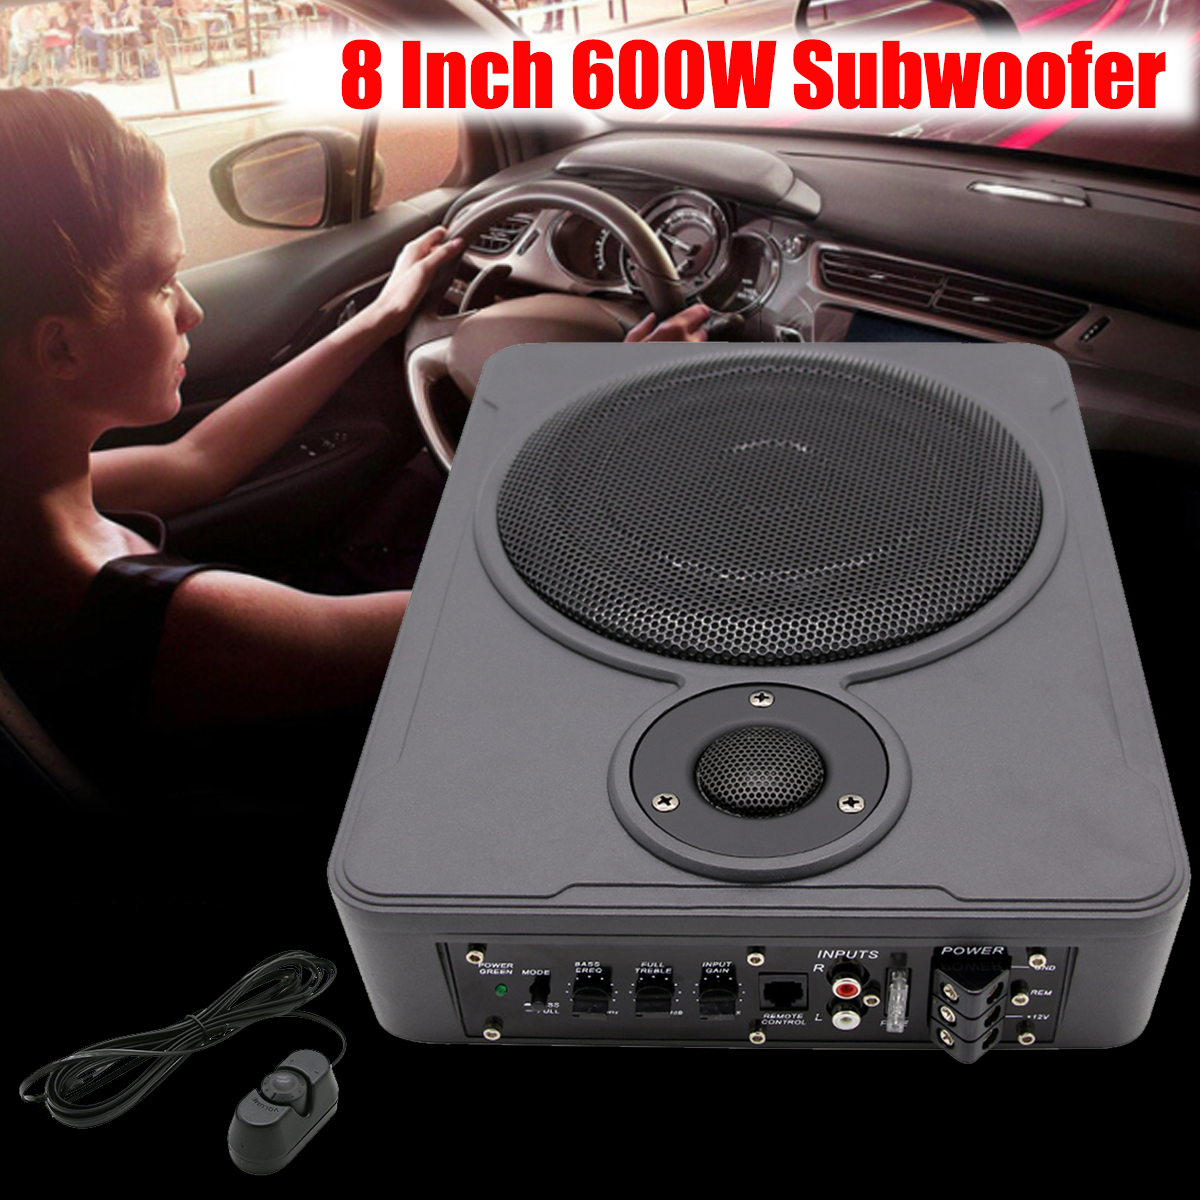 small resolution of 8 inch bluetooth car home subwoofer under seat sub 600w stereo subwoofer car audio speaker music system sound woofer in car multimedia player from